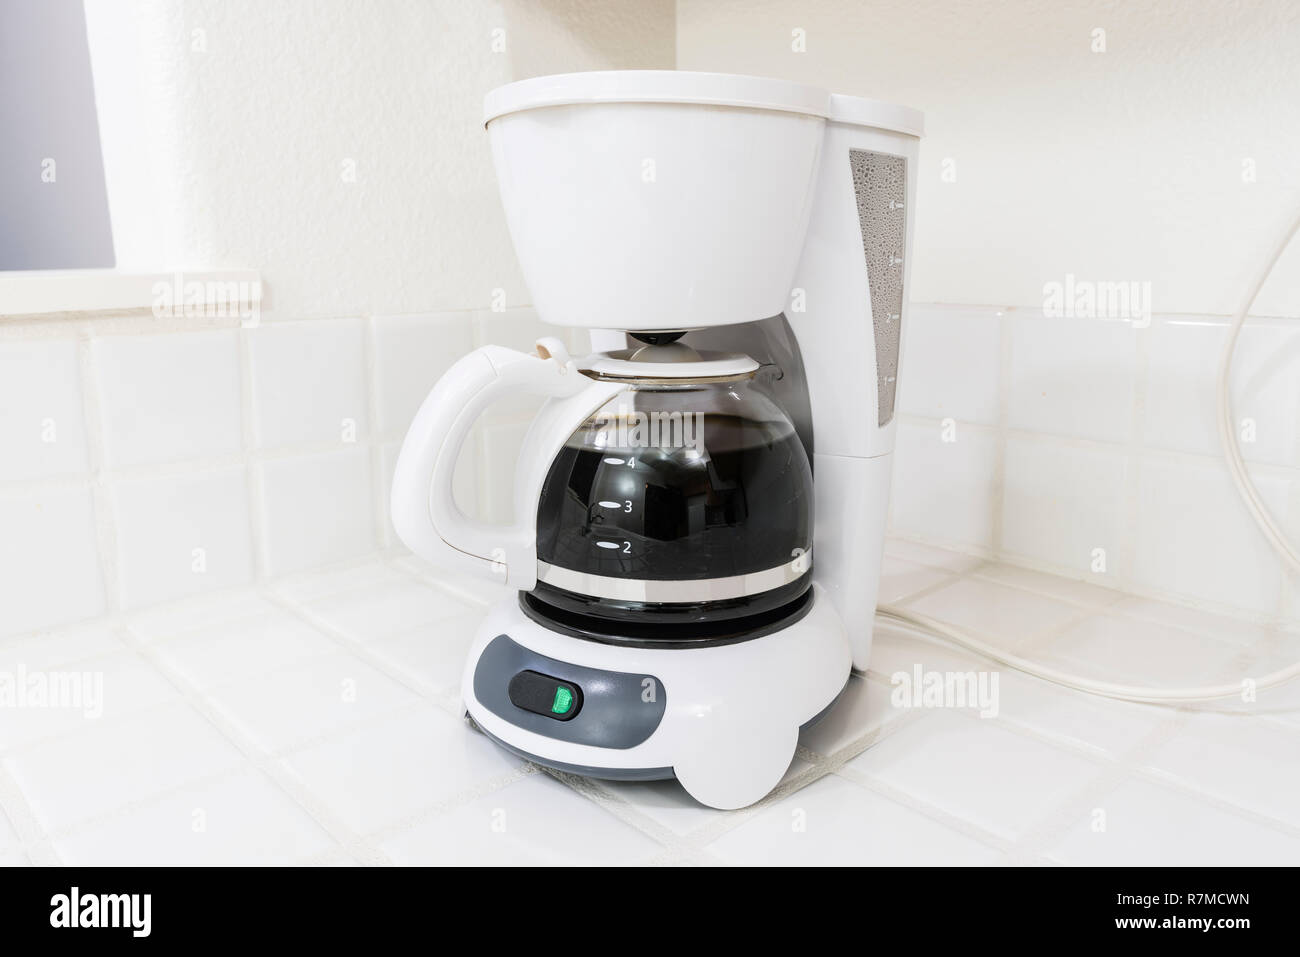 White coffee maker brewing on clean white tile kitchen counter. - Stock Image